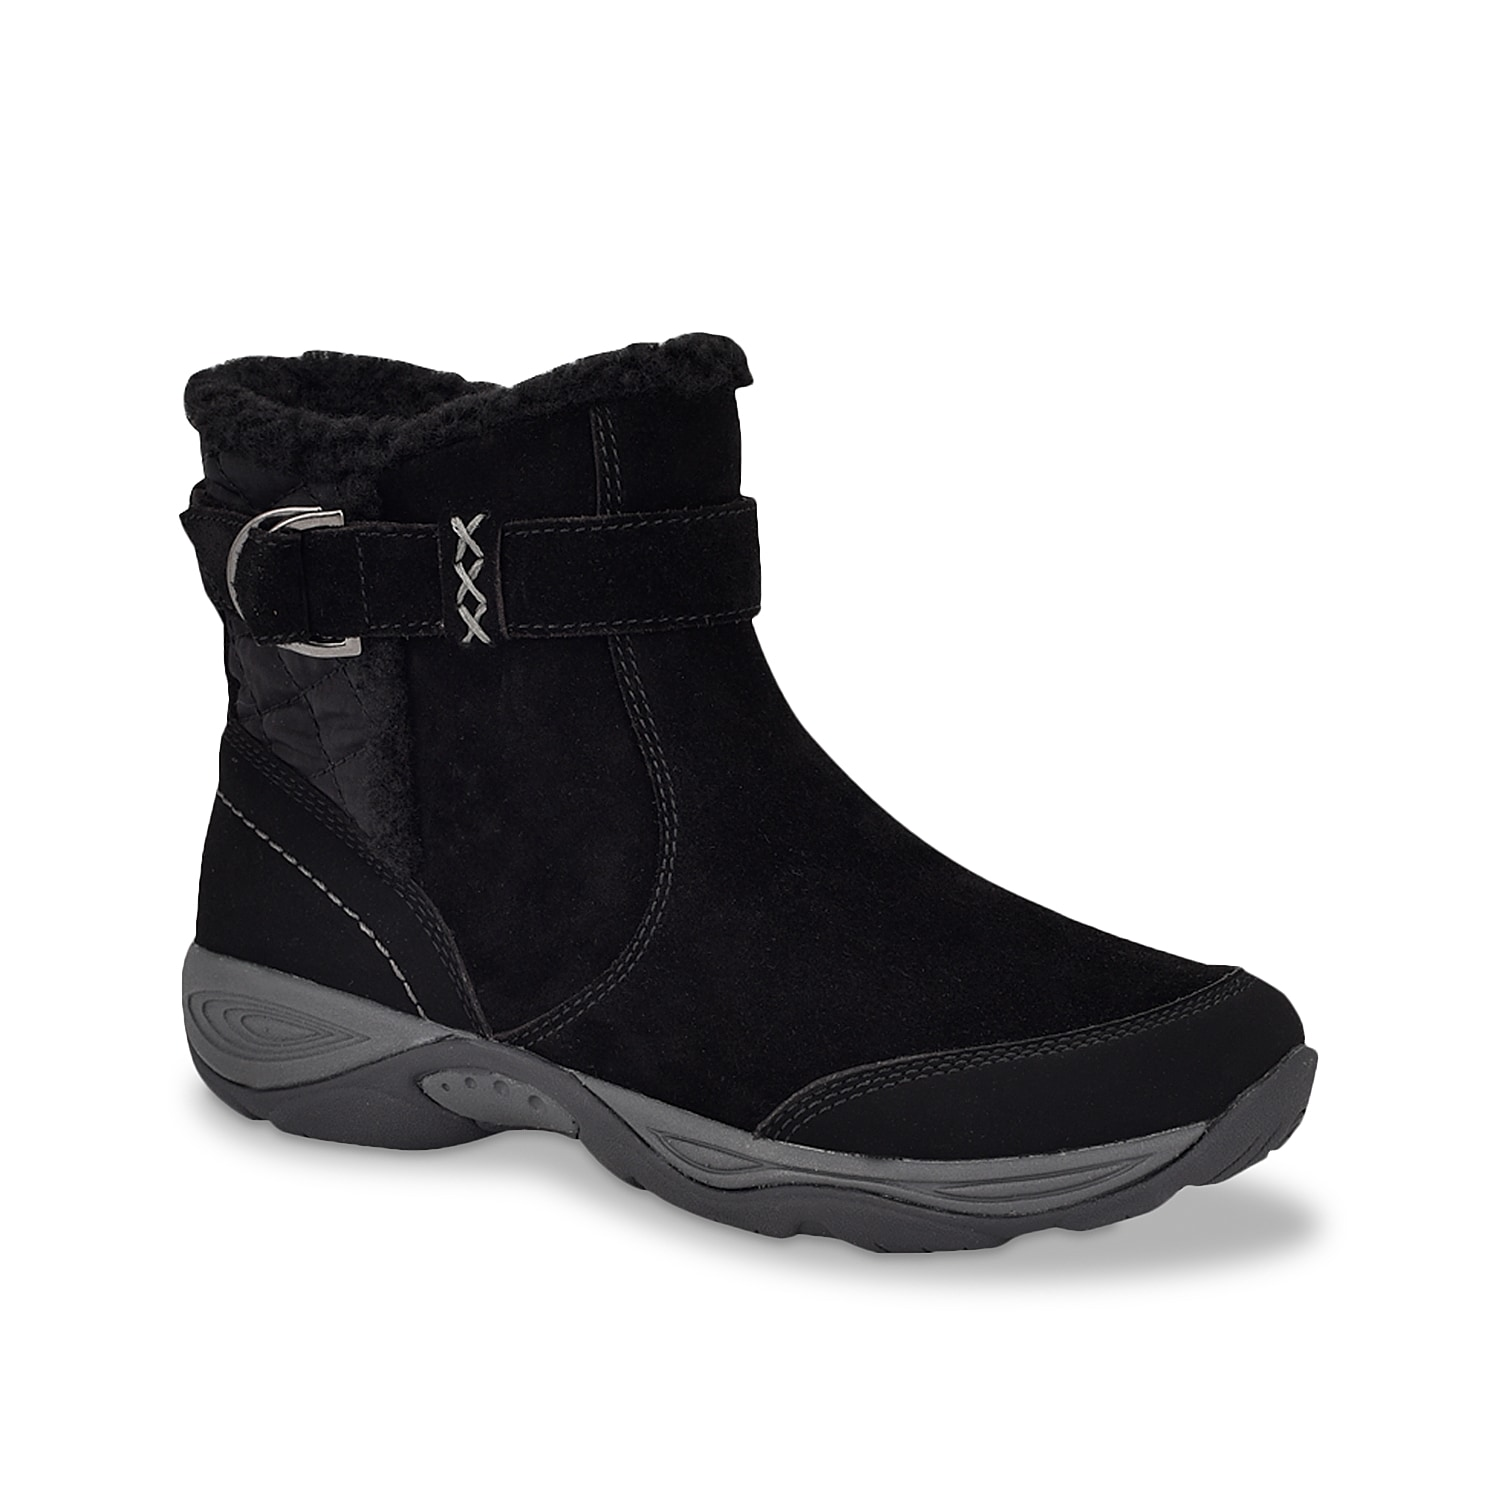 Stay protected all season long with the Seelk snow boot from Easy Spirit. Designed using a water-resistant upper, this winter boot features a plush faux woolen collar, impact- resisting EVA midsole and lugged rubber sole for enhanced comfort and ease on snow.Click here for Boot Measuring Guide.